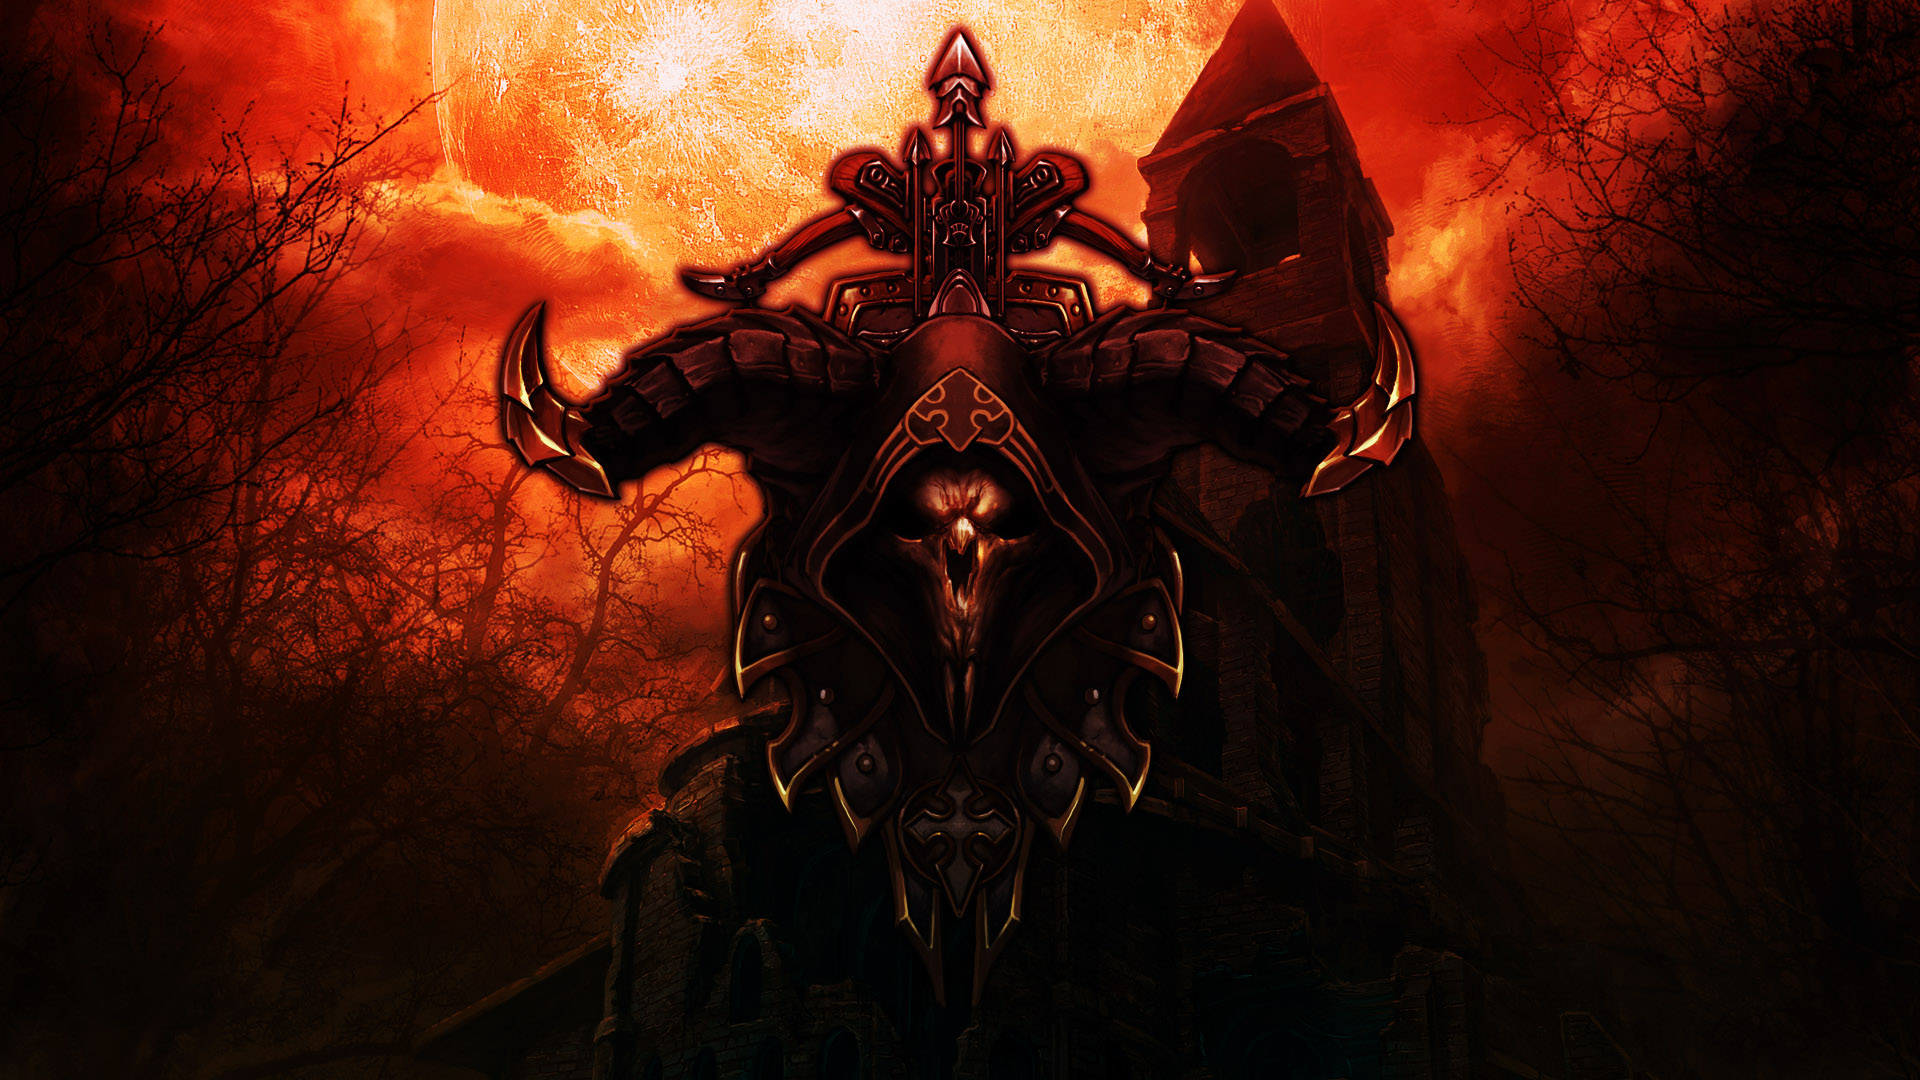 Free Download Computerspiel Diablo Iii Demon Hunter Wallpaper